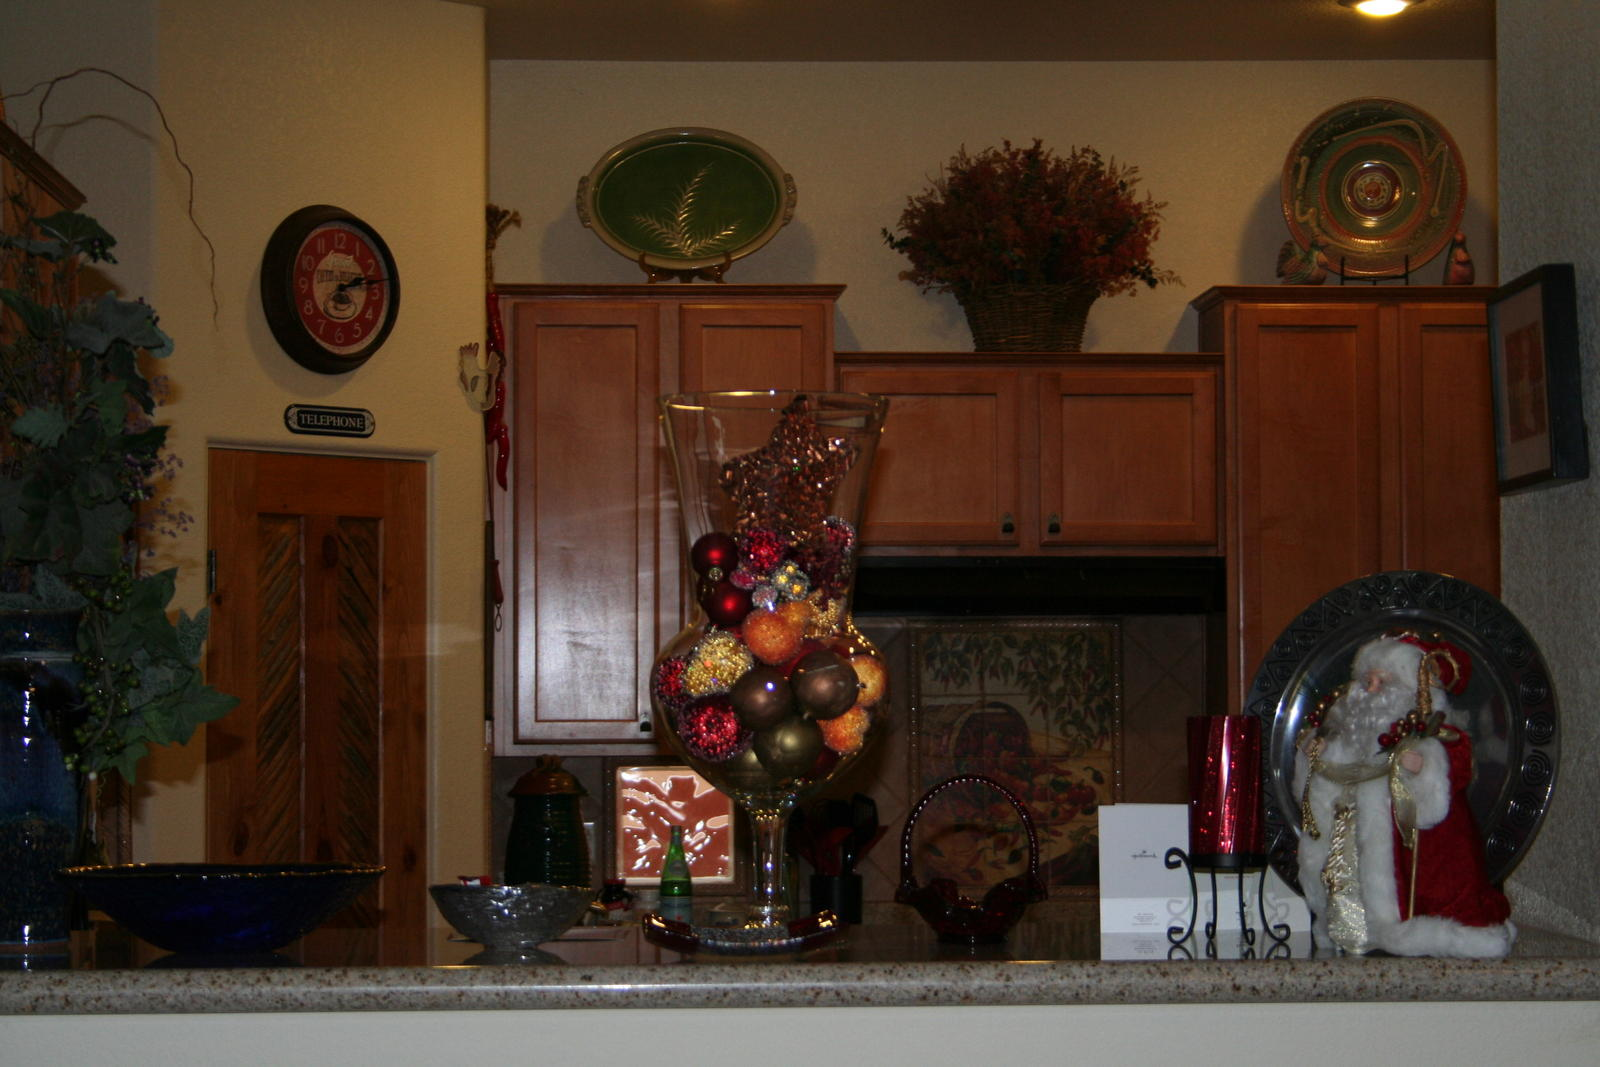 Curious Kitchen Soffits In Most Homes Why For Sale